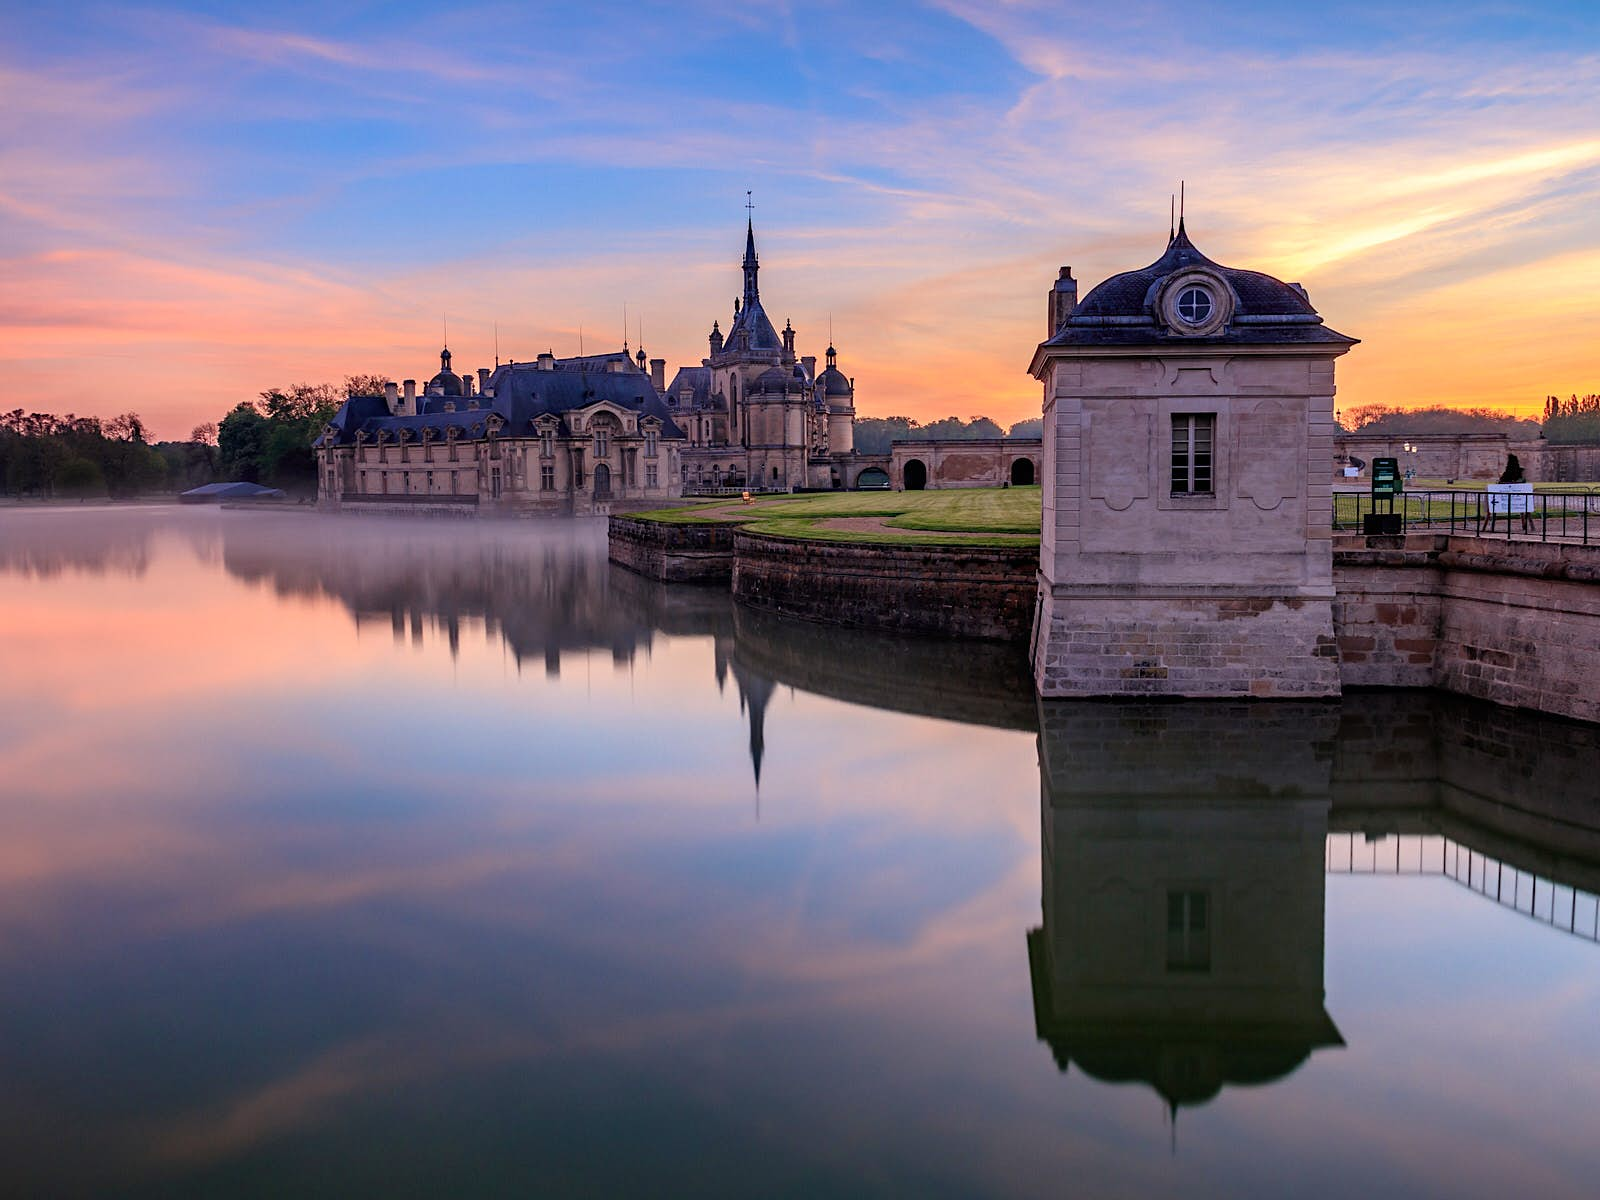 The Château de Chantilly: a large mansion rising from an artificial lake, photographed here at dawn.